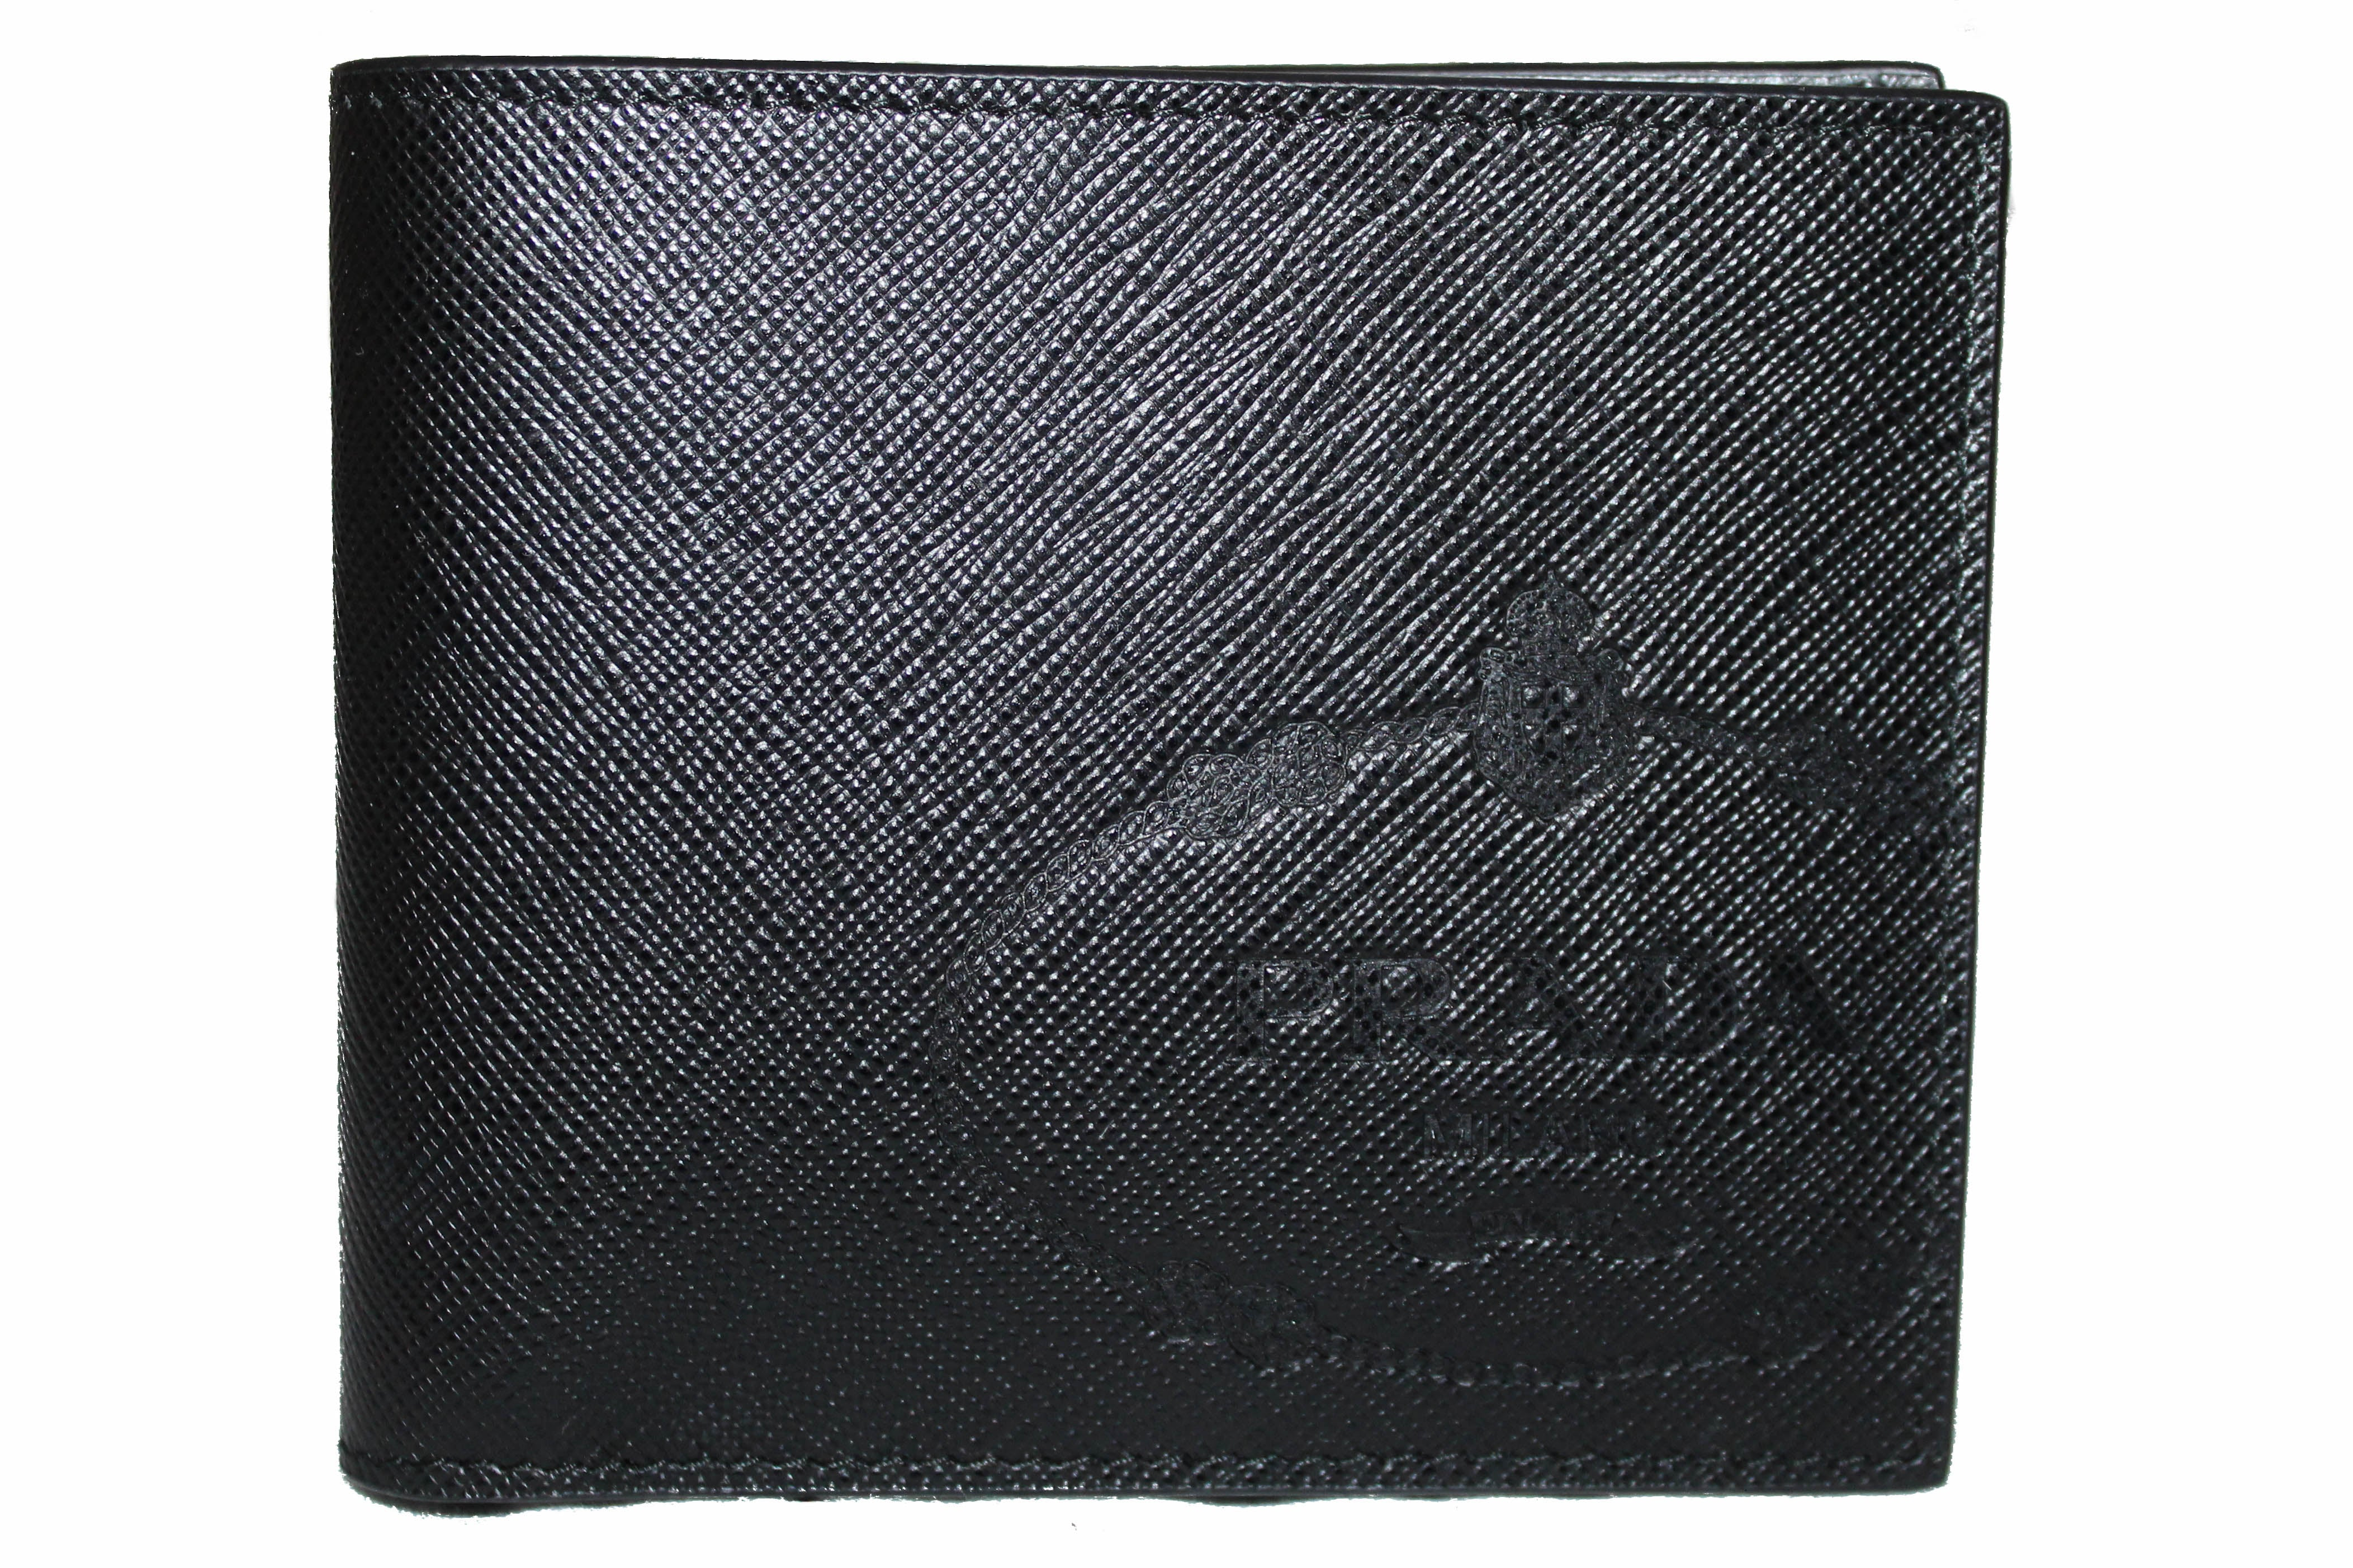 Authentic NEW Prada Black Saffiano Leather Men Wallet